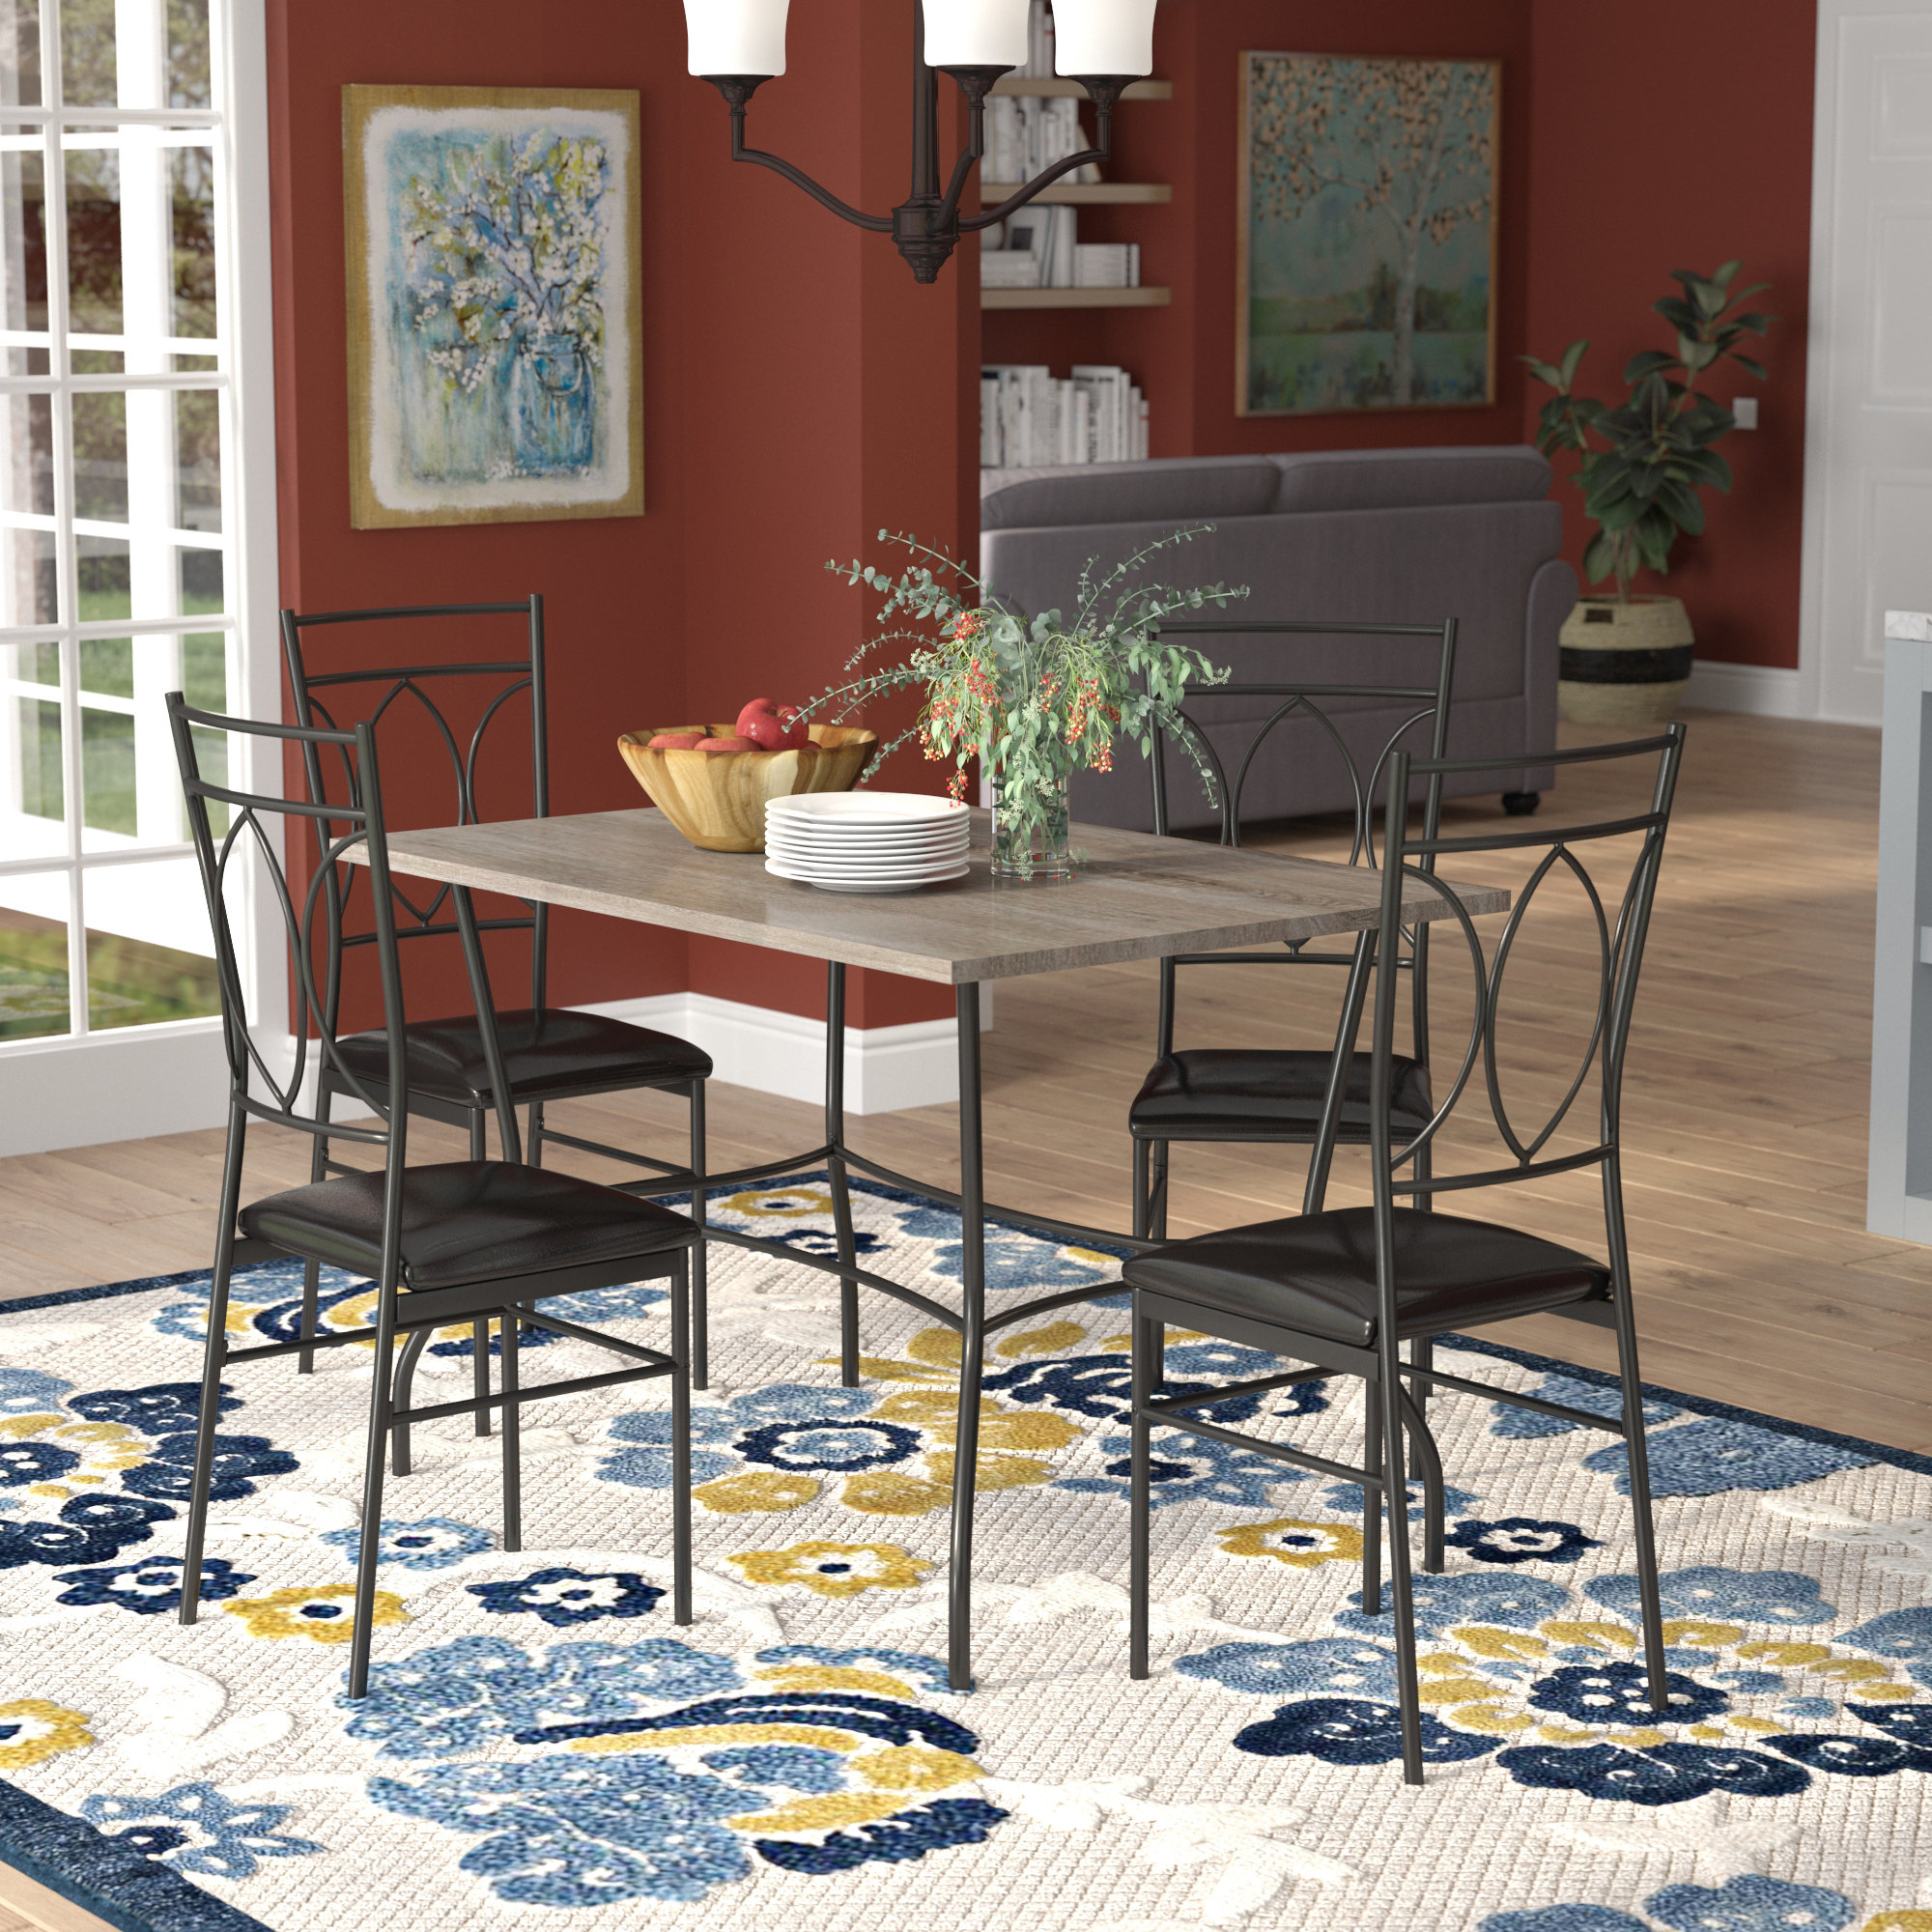 Middleport 5 Piece Dining Sets Inside Famous Malina 5 Piece Dining Set (View 15 of 20)